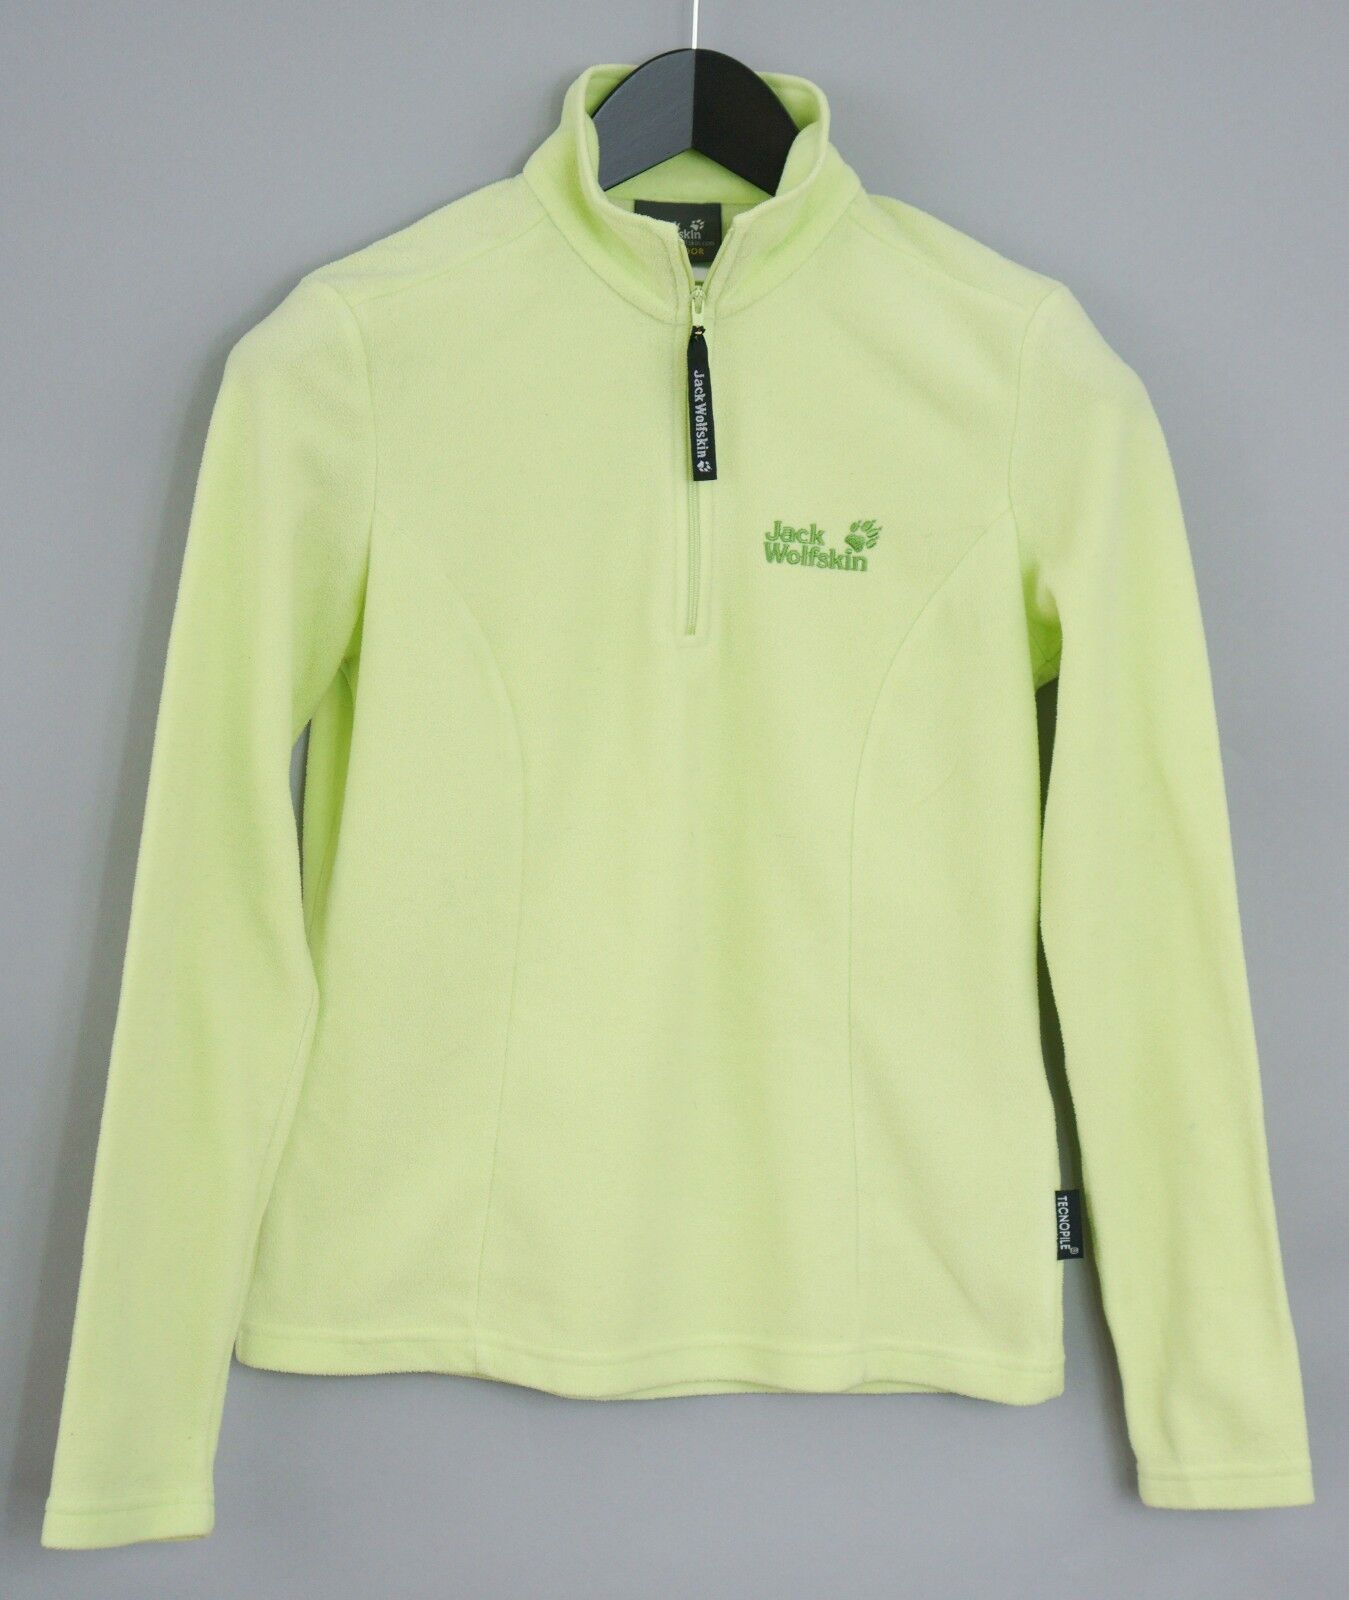 reputable site 3ec34 3f460 Details about Women Jack Wolfskin Fleece Jacket Tecnopile Ultra Warm  Outdoor S UK10 XIM983